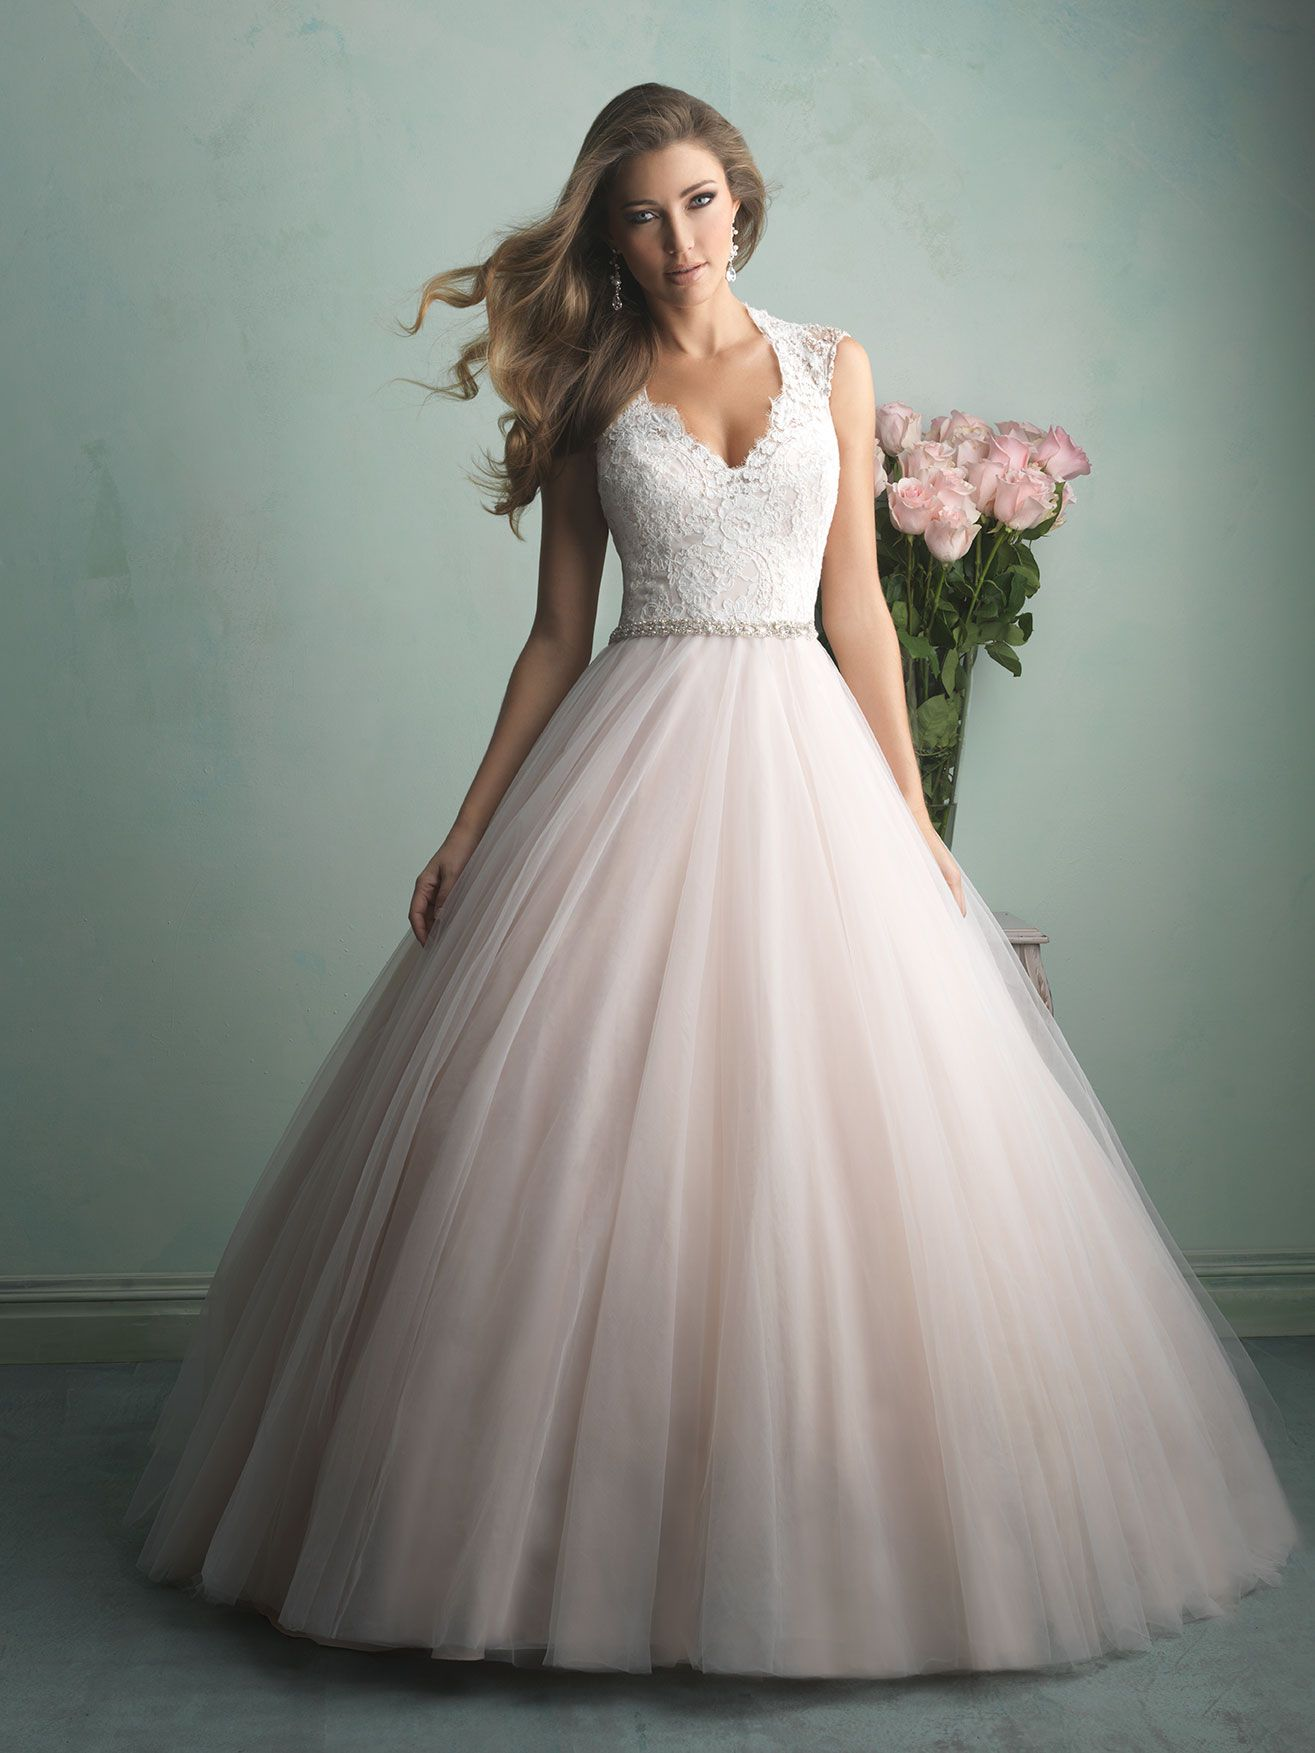 This blush tulle dress by Allure Bridals is a traditional ball gown ...